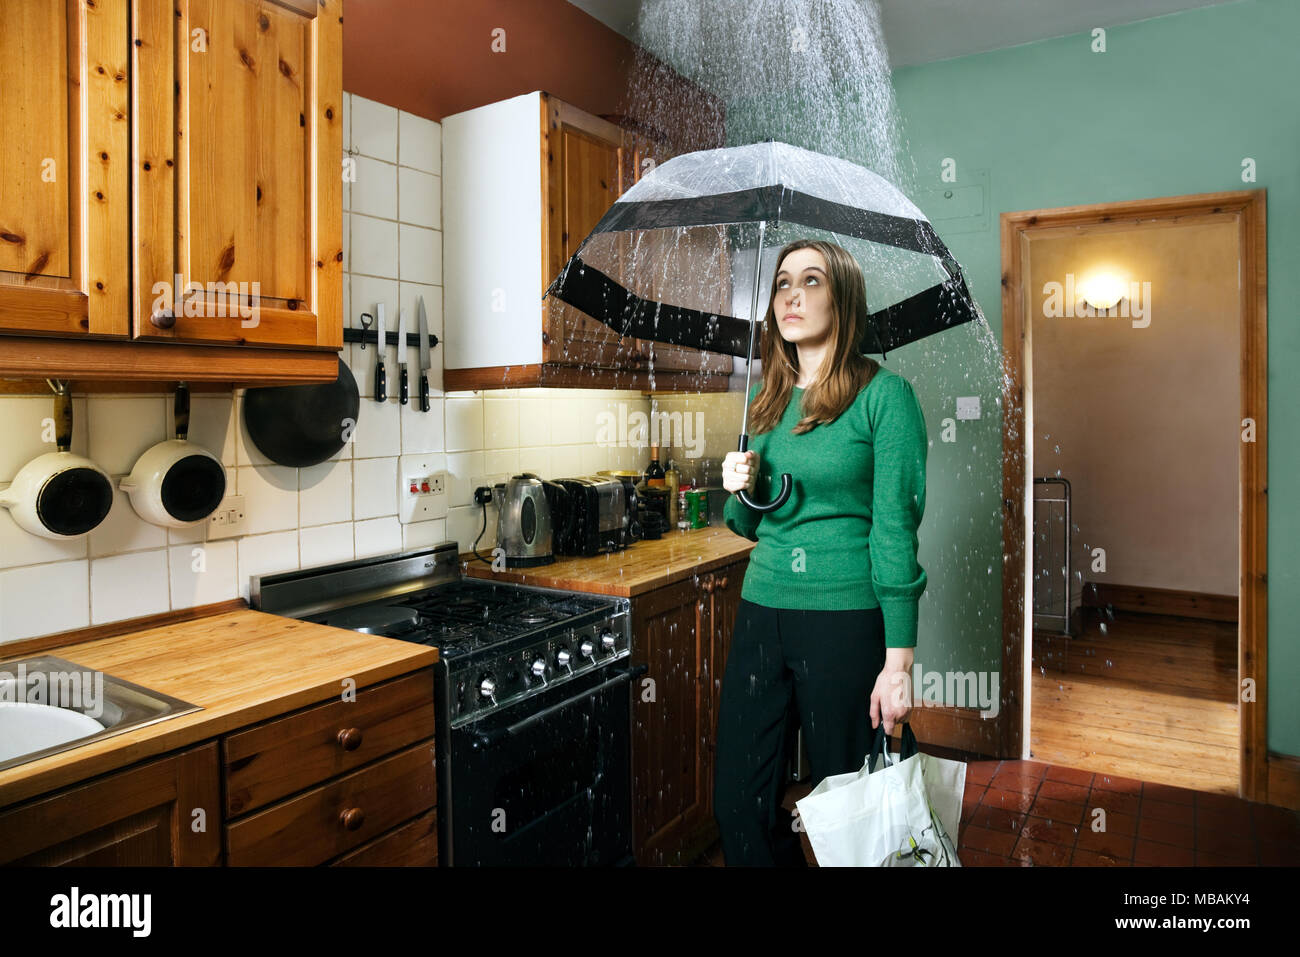 Woman standing in kitchen with umbrella under shower of rain, indoors - Stock Image